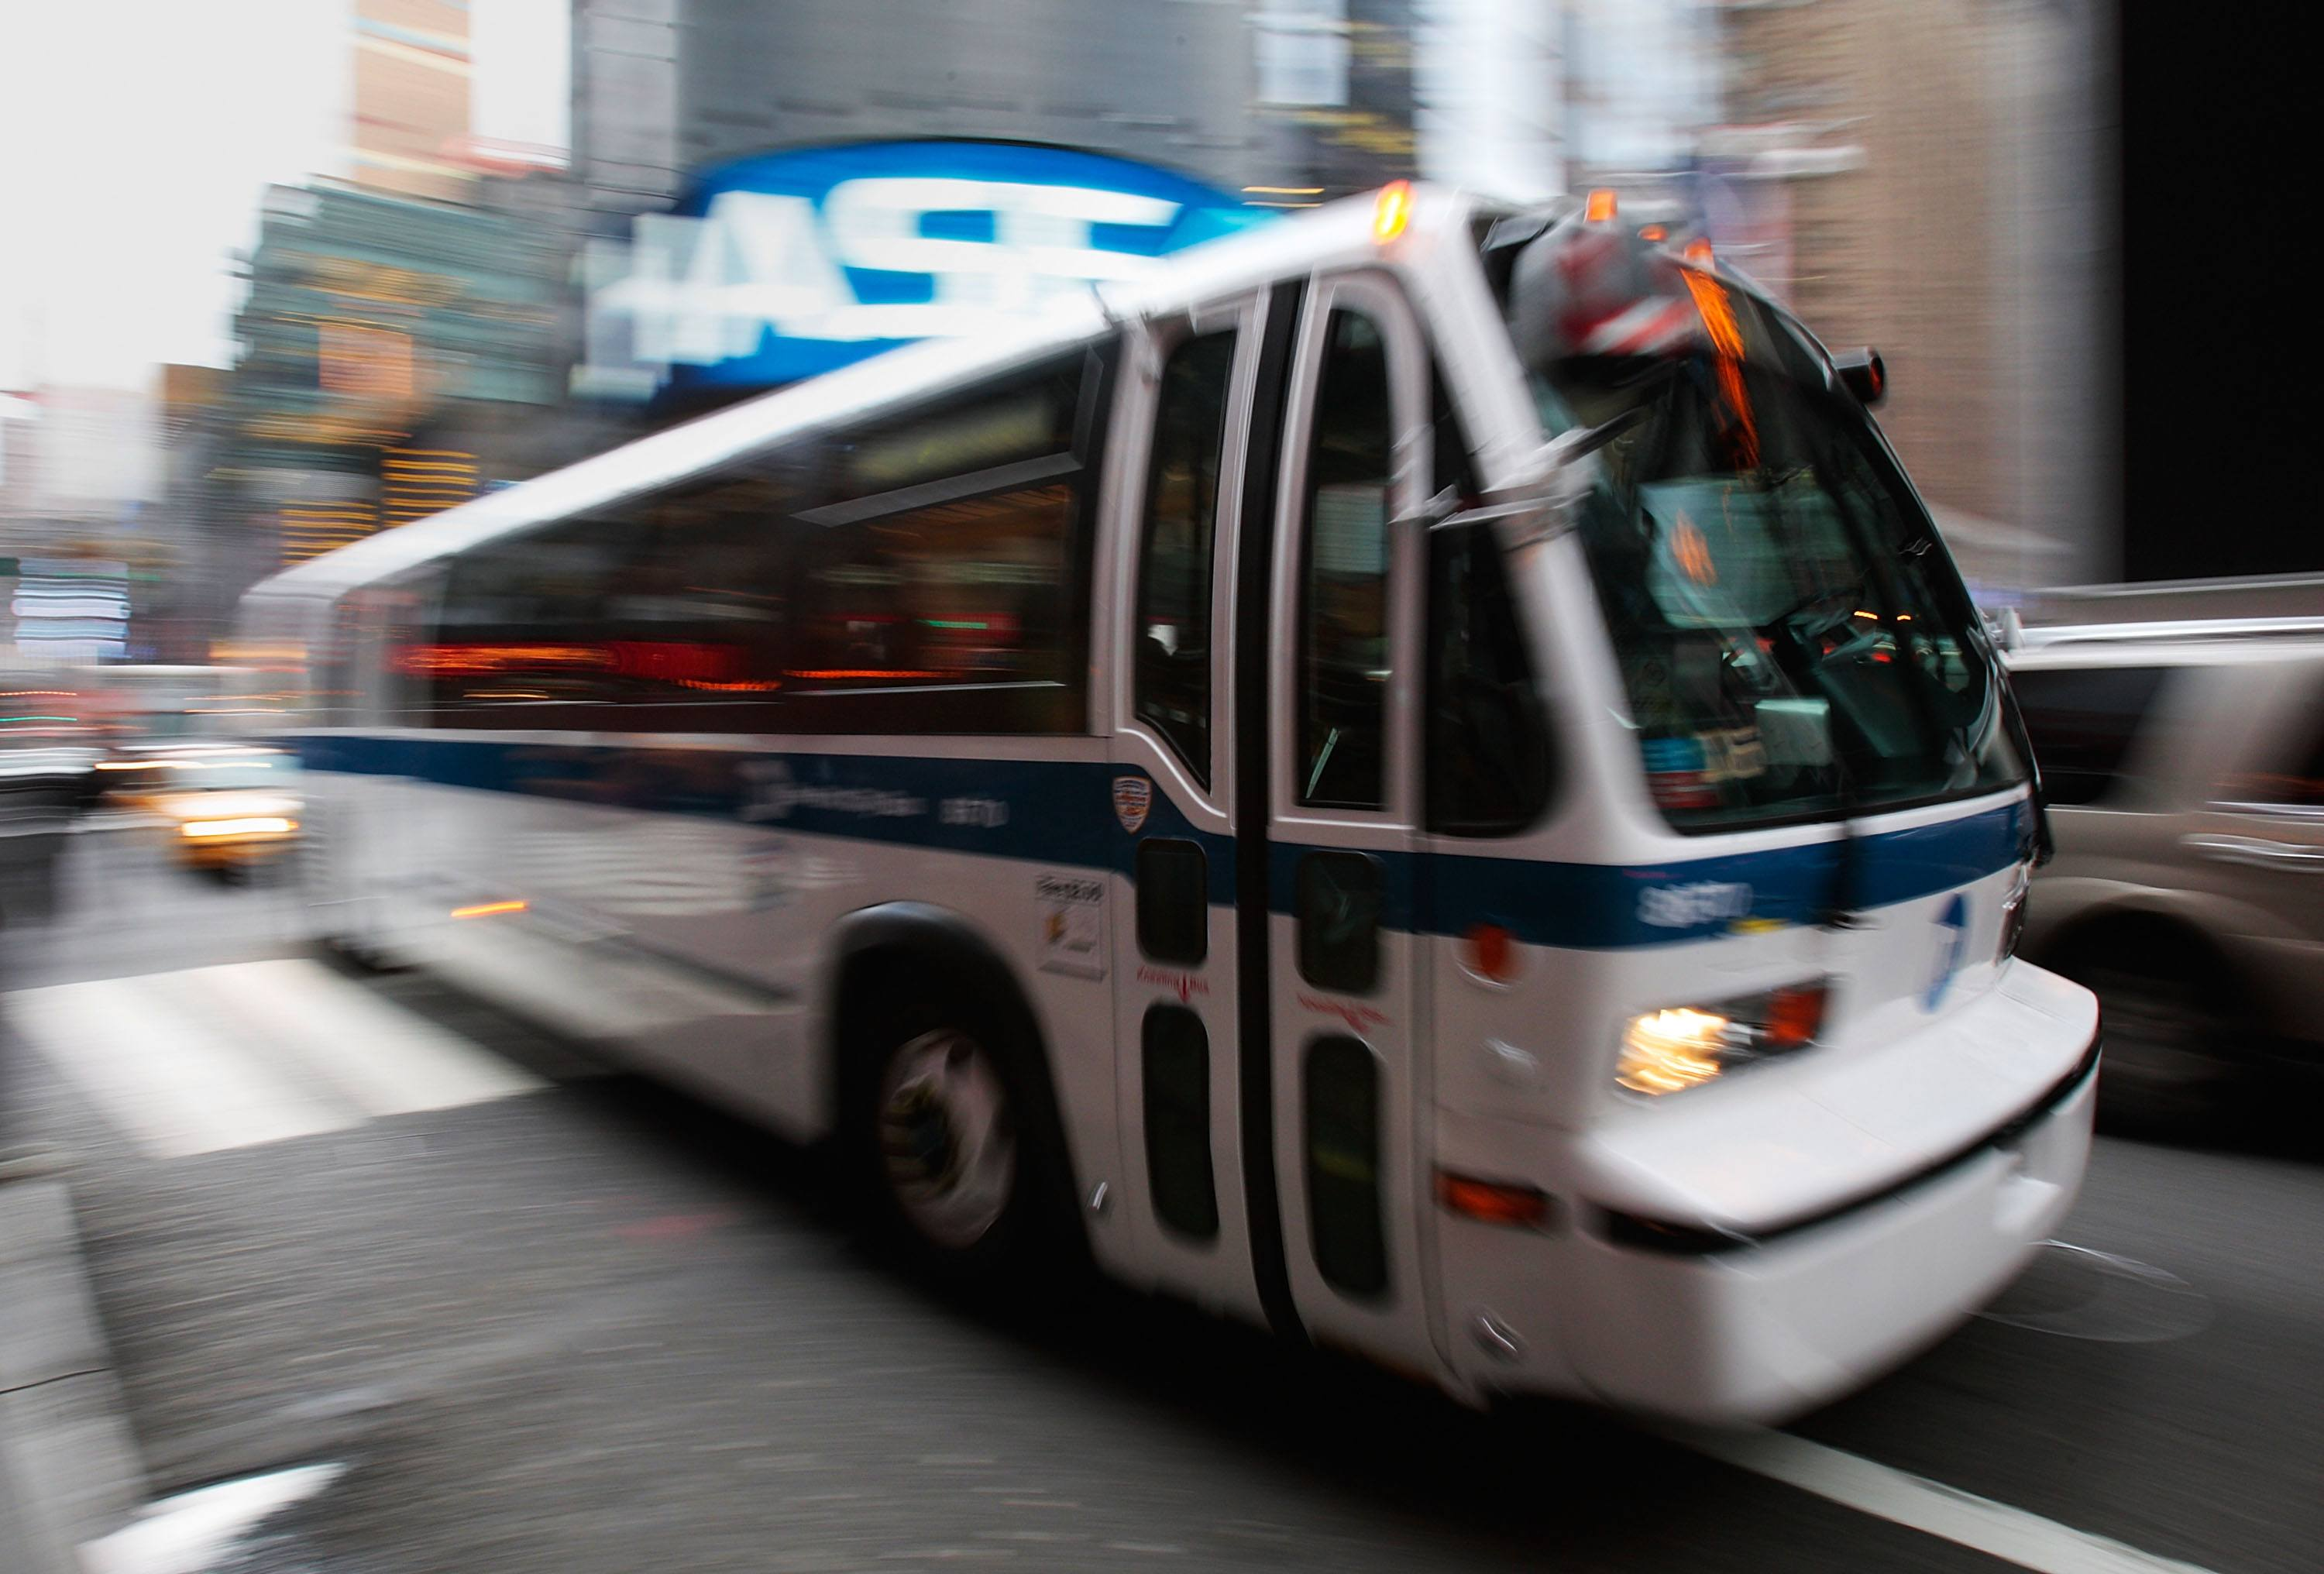 A New York City bus moves by in Times Square